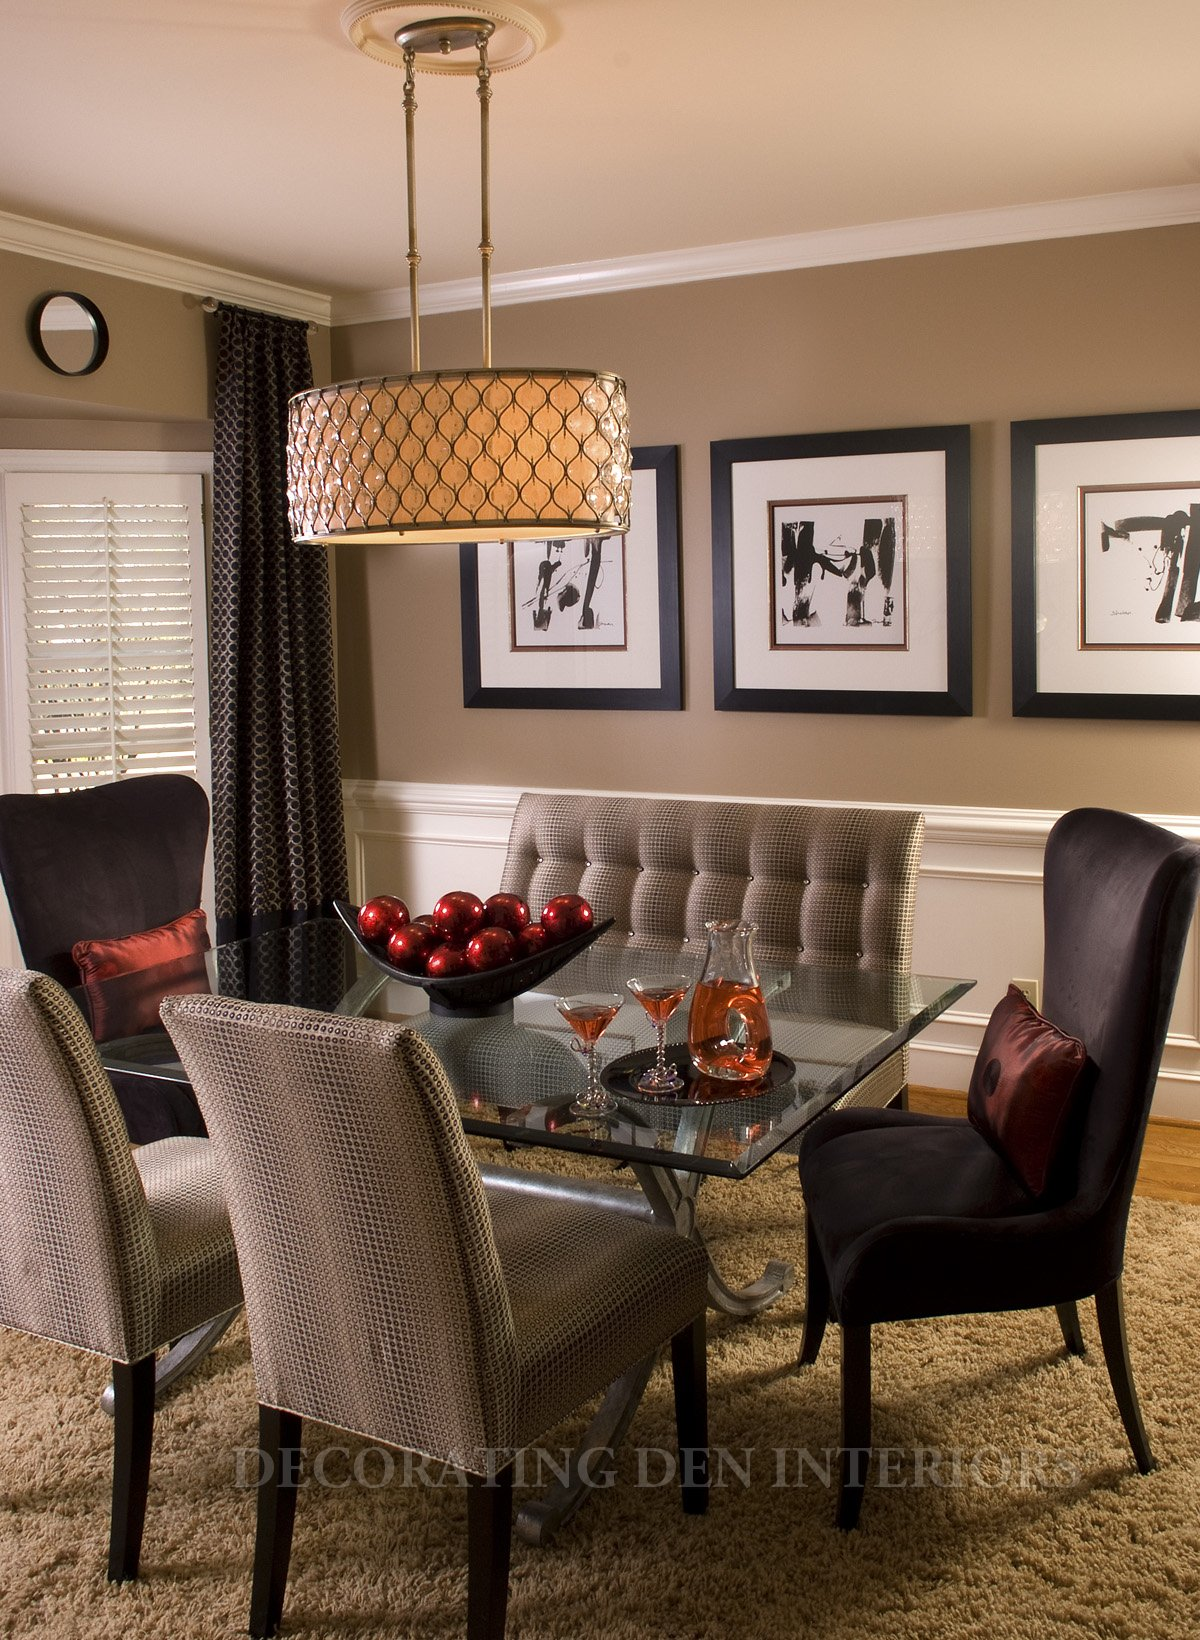 Seven Ways To Spruce Up Your Dining Room Decorating